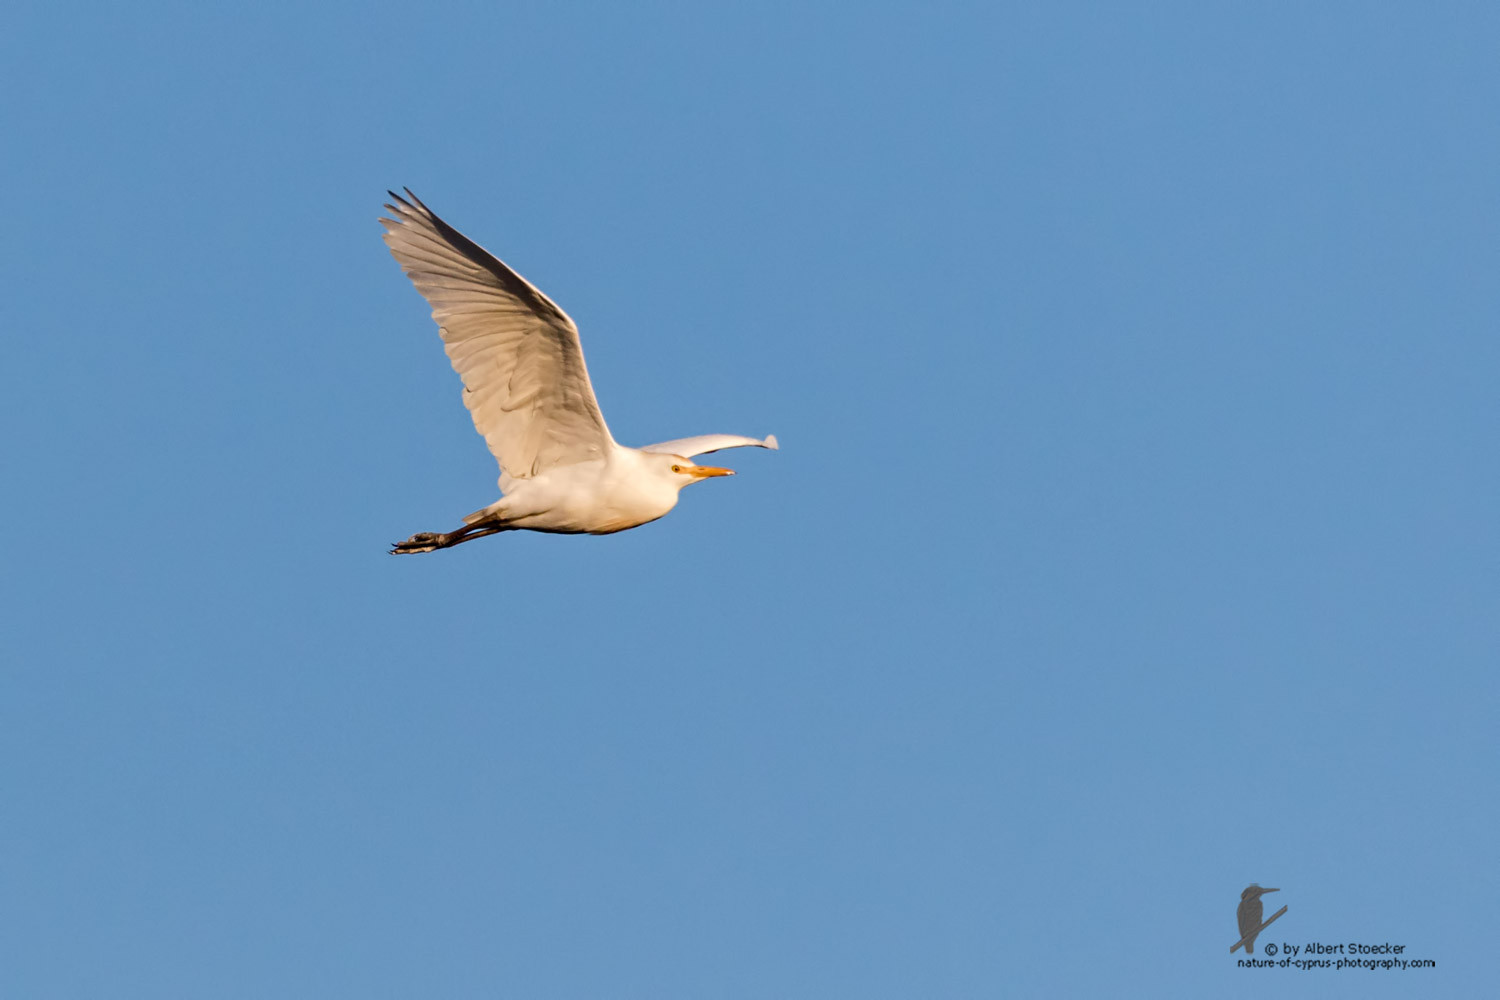 Bubulcus ibis - Cattle Egret - Kuhreiher, Cyprus, Oroklini Lake, January 2016